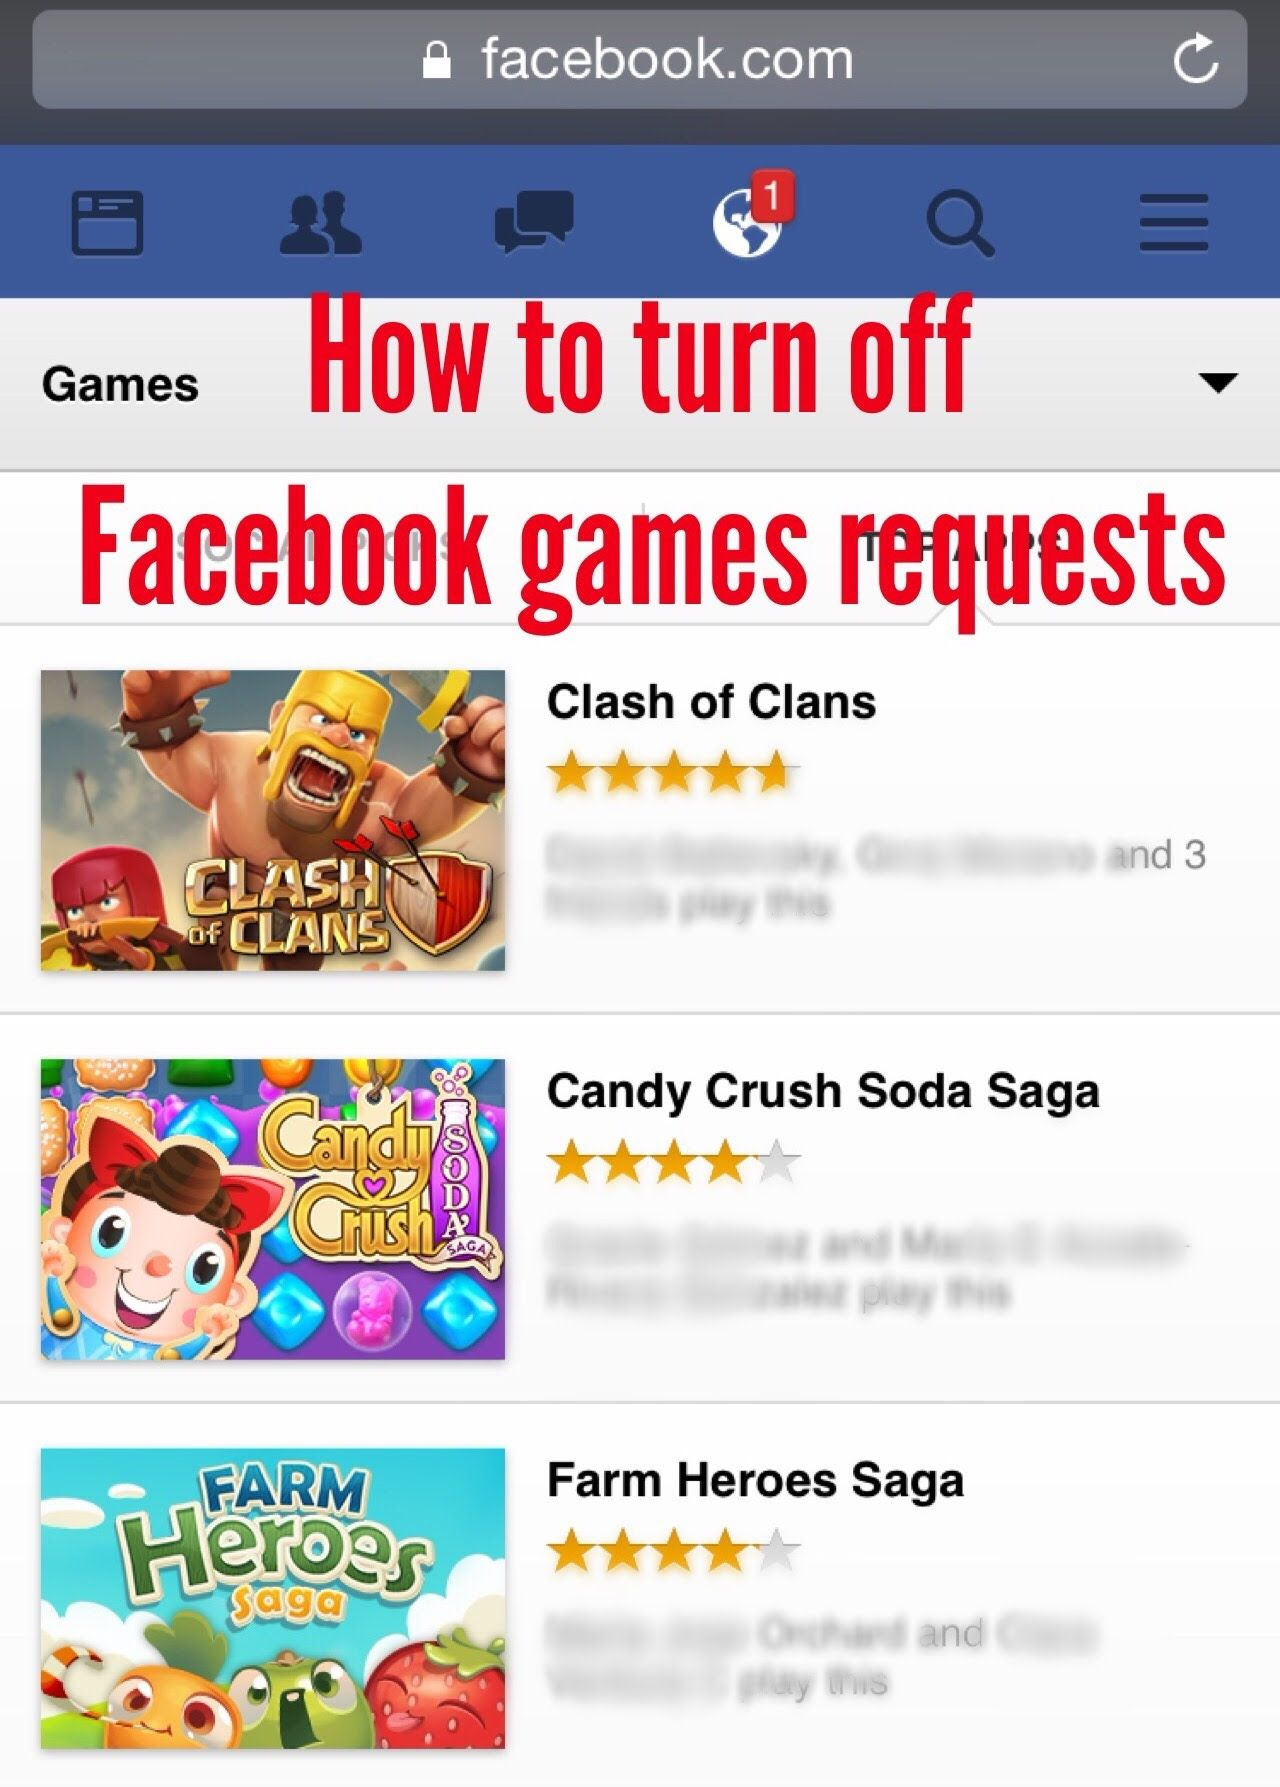 How to turn off Facebook games requests in seconds